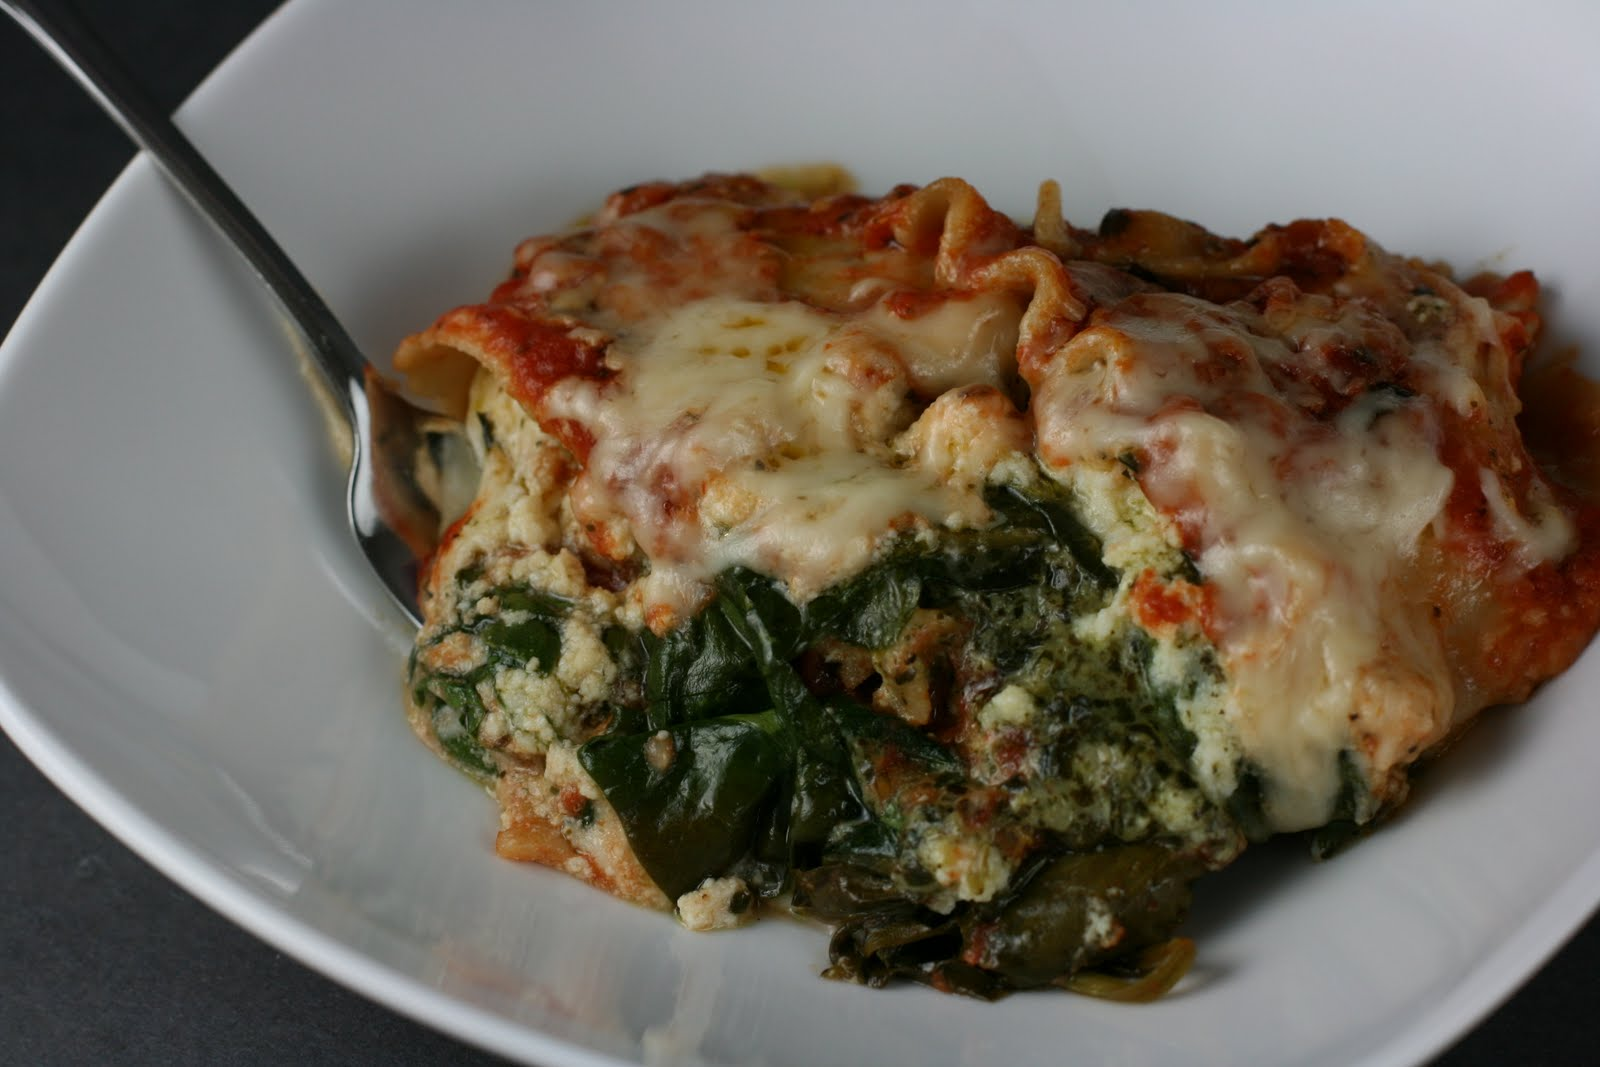 Discussion on this topic: Mushroom, Pesto and Spinach Lasagne Recipe, mushroom-pesto-and-spinach-lasagne-recipe/